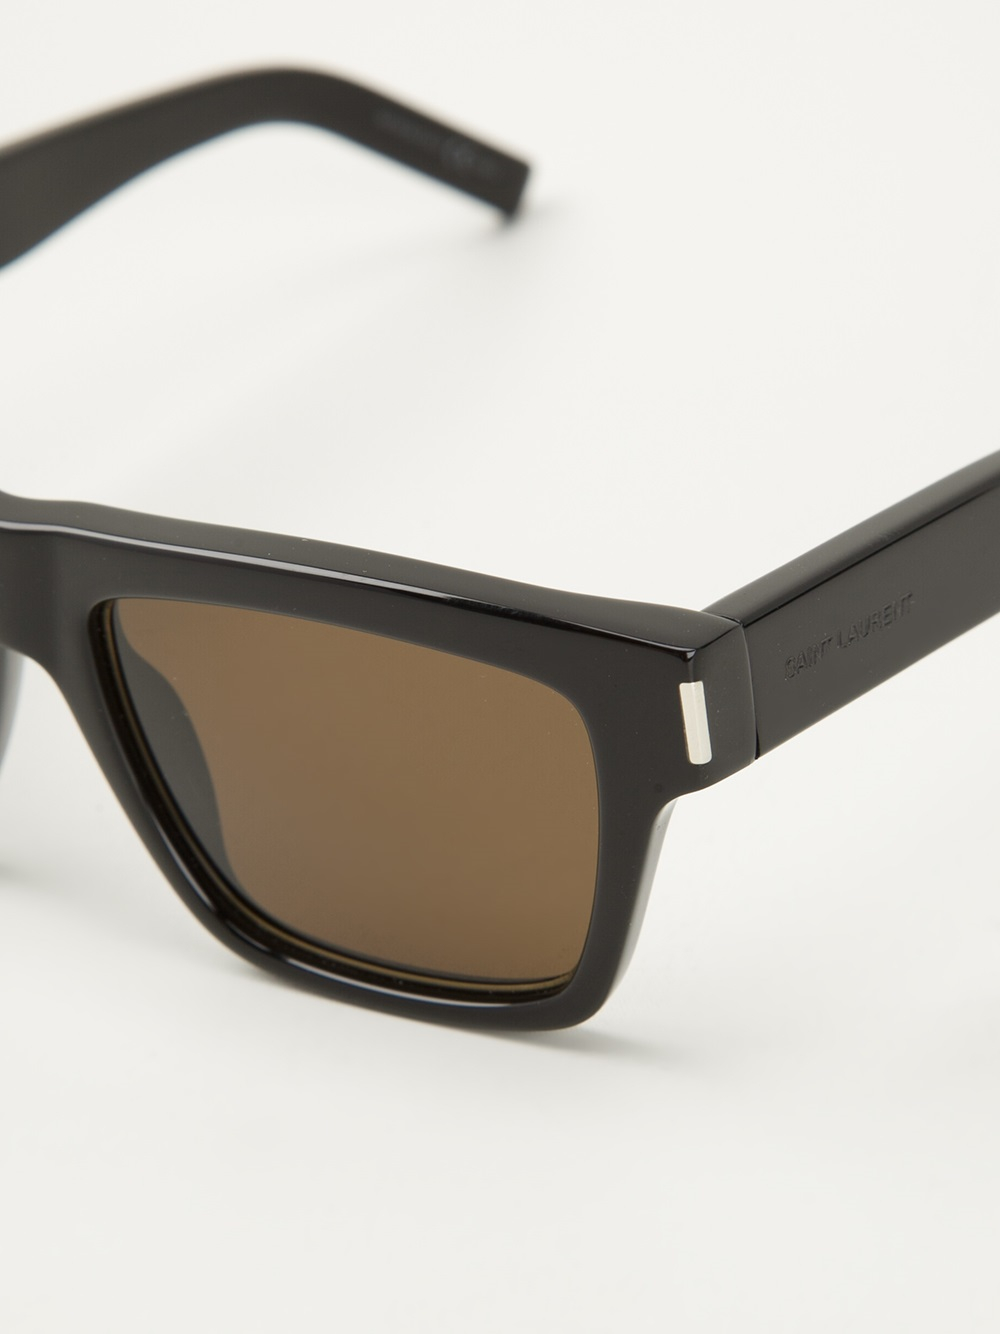 343c04b138b Lyst - Saint Laurent Bold 5 Sunglasses in Black for Men